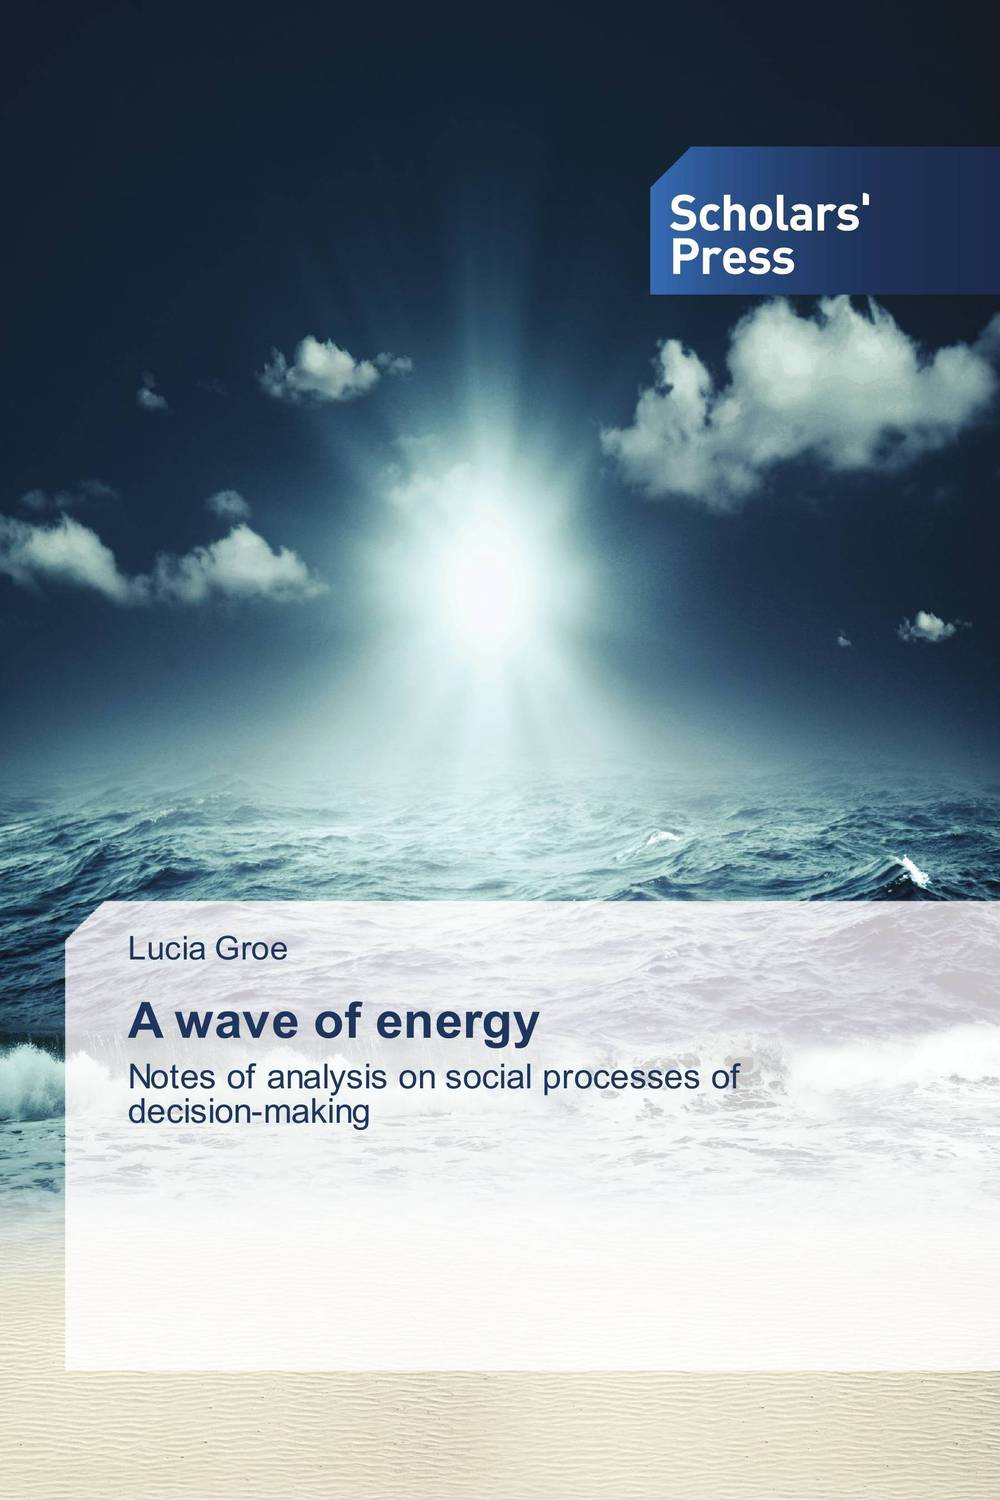 A wave of energy